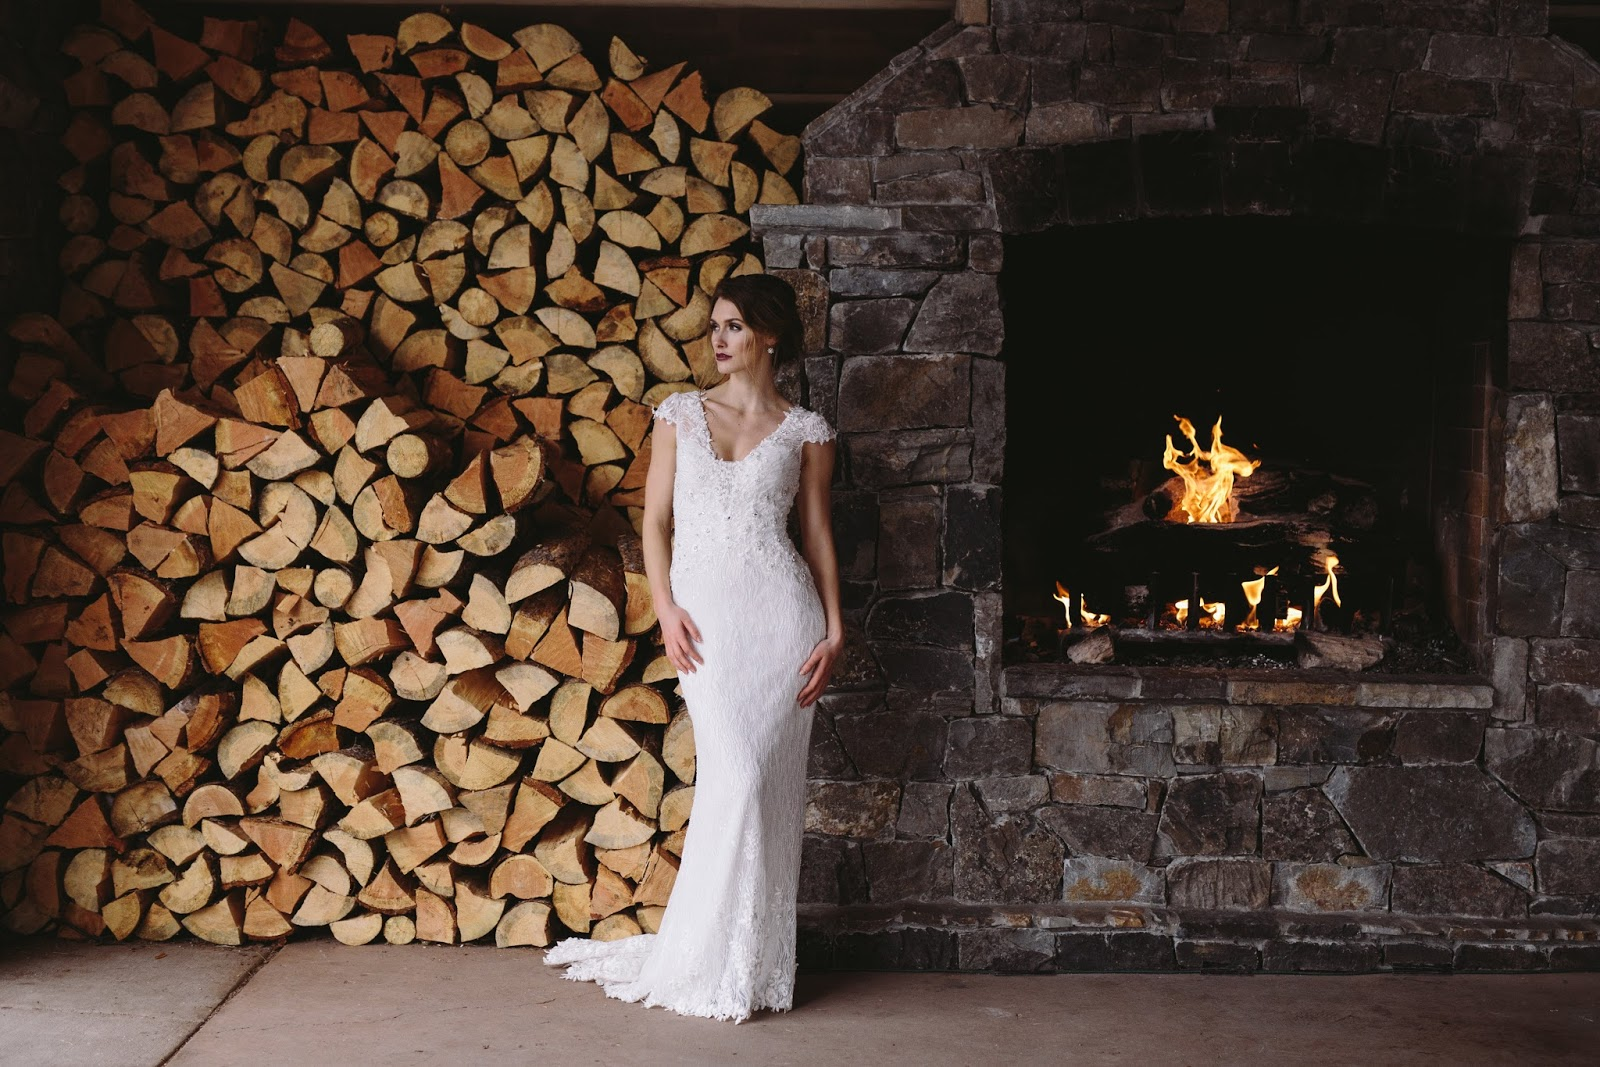 Montana Winter Wedding Venue / The Lodge at Whitefish Lake